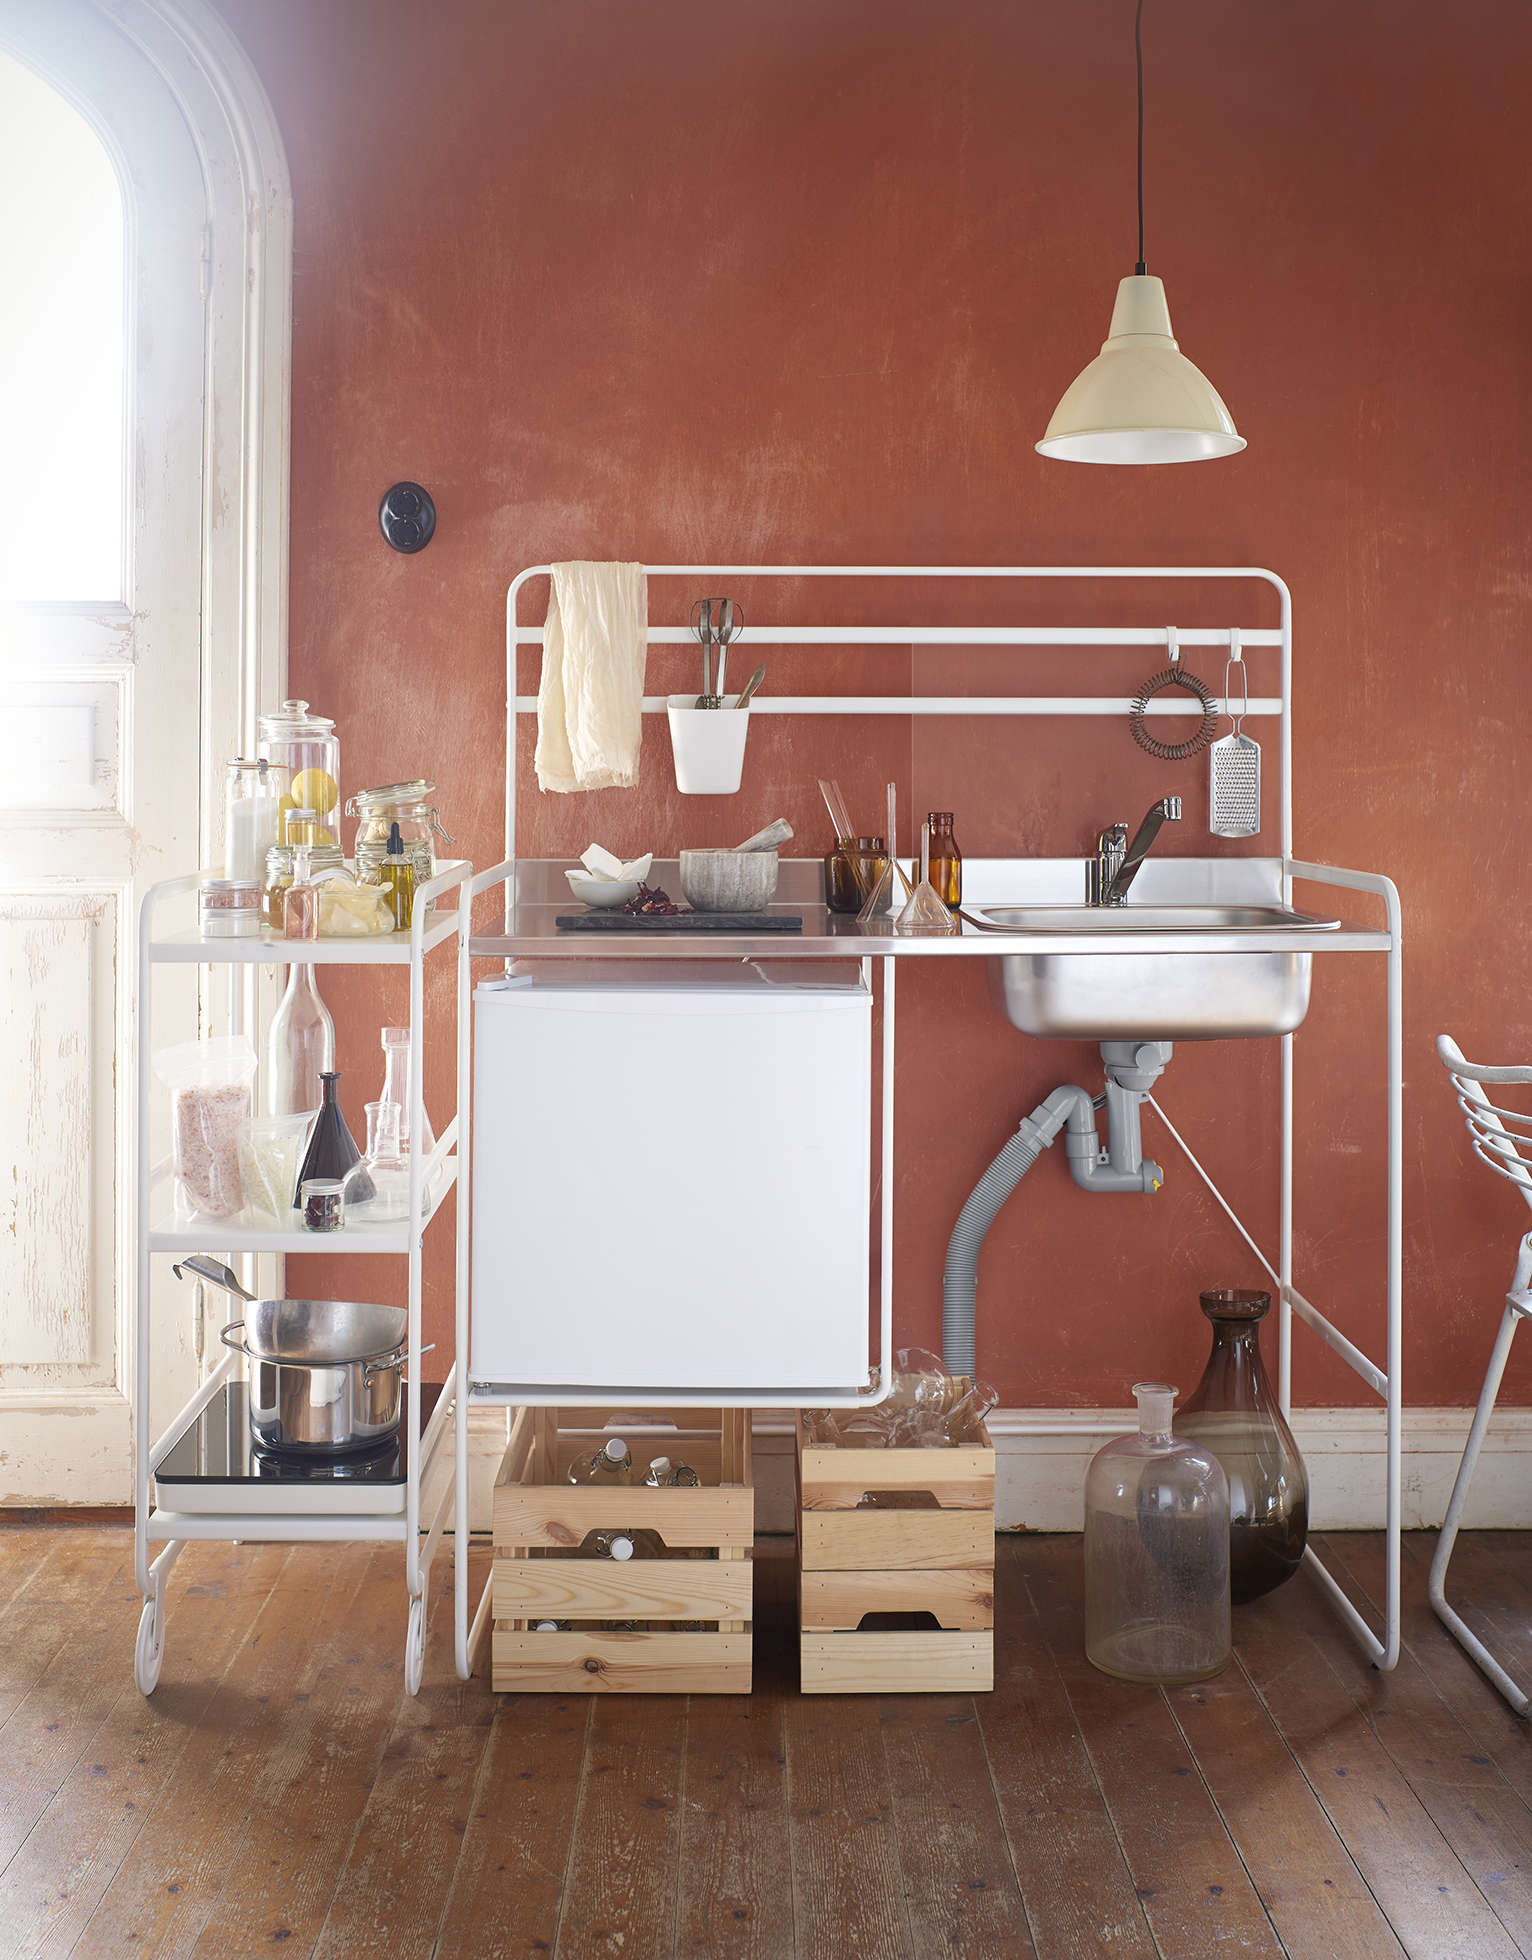 10 best new ikea products for 2017 120 kitchen included - Mini cuisine ikea ...